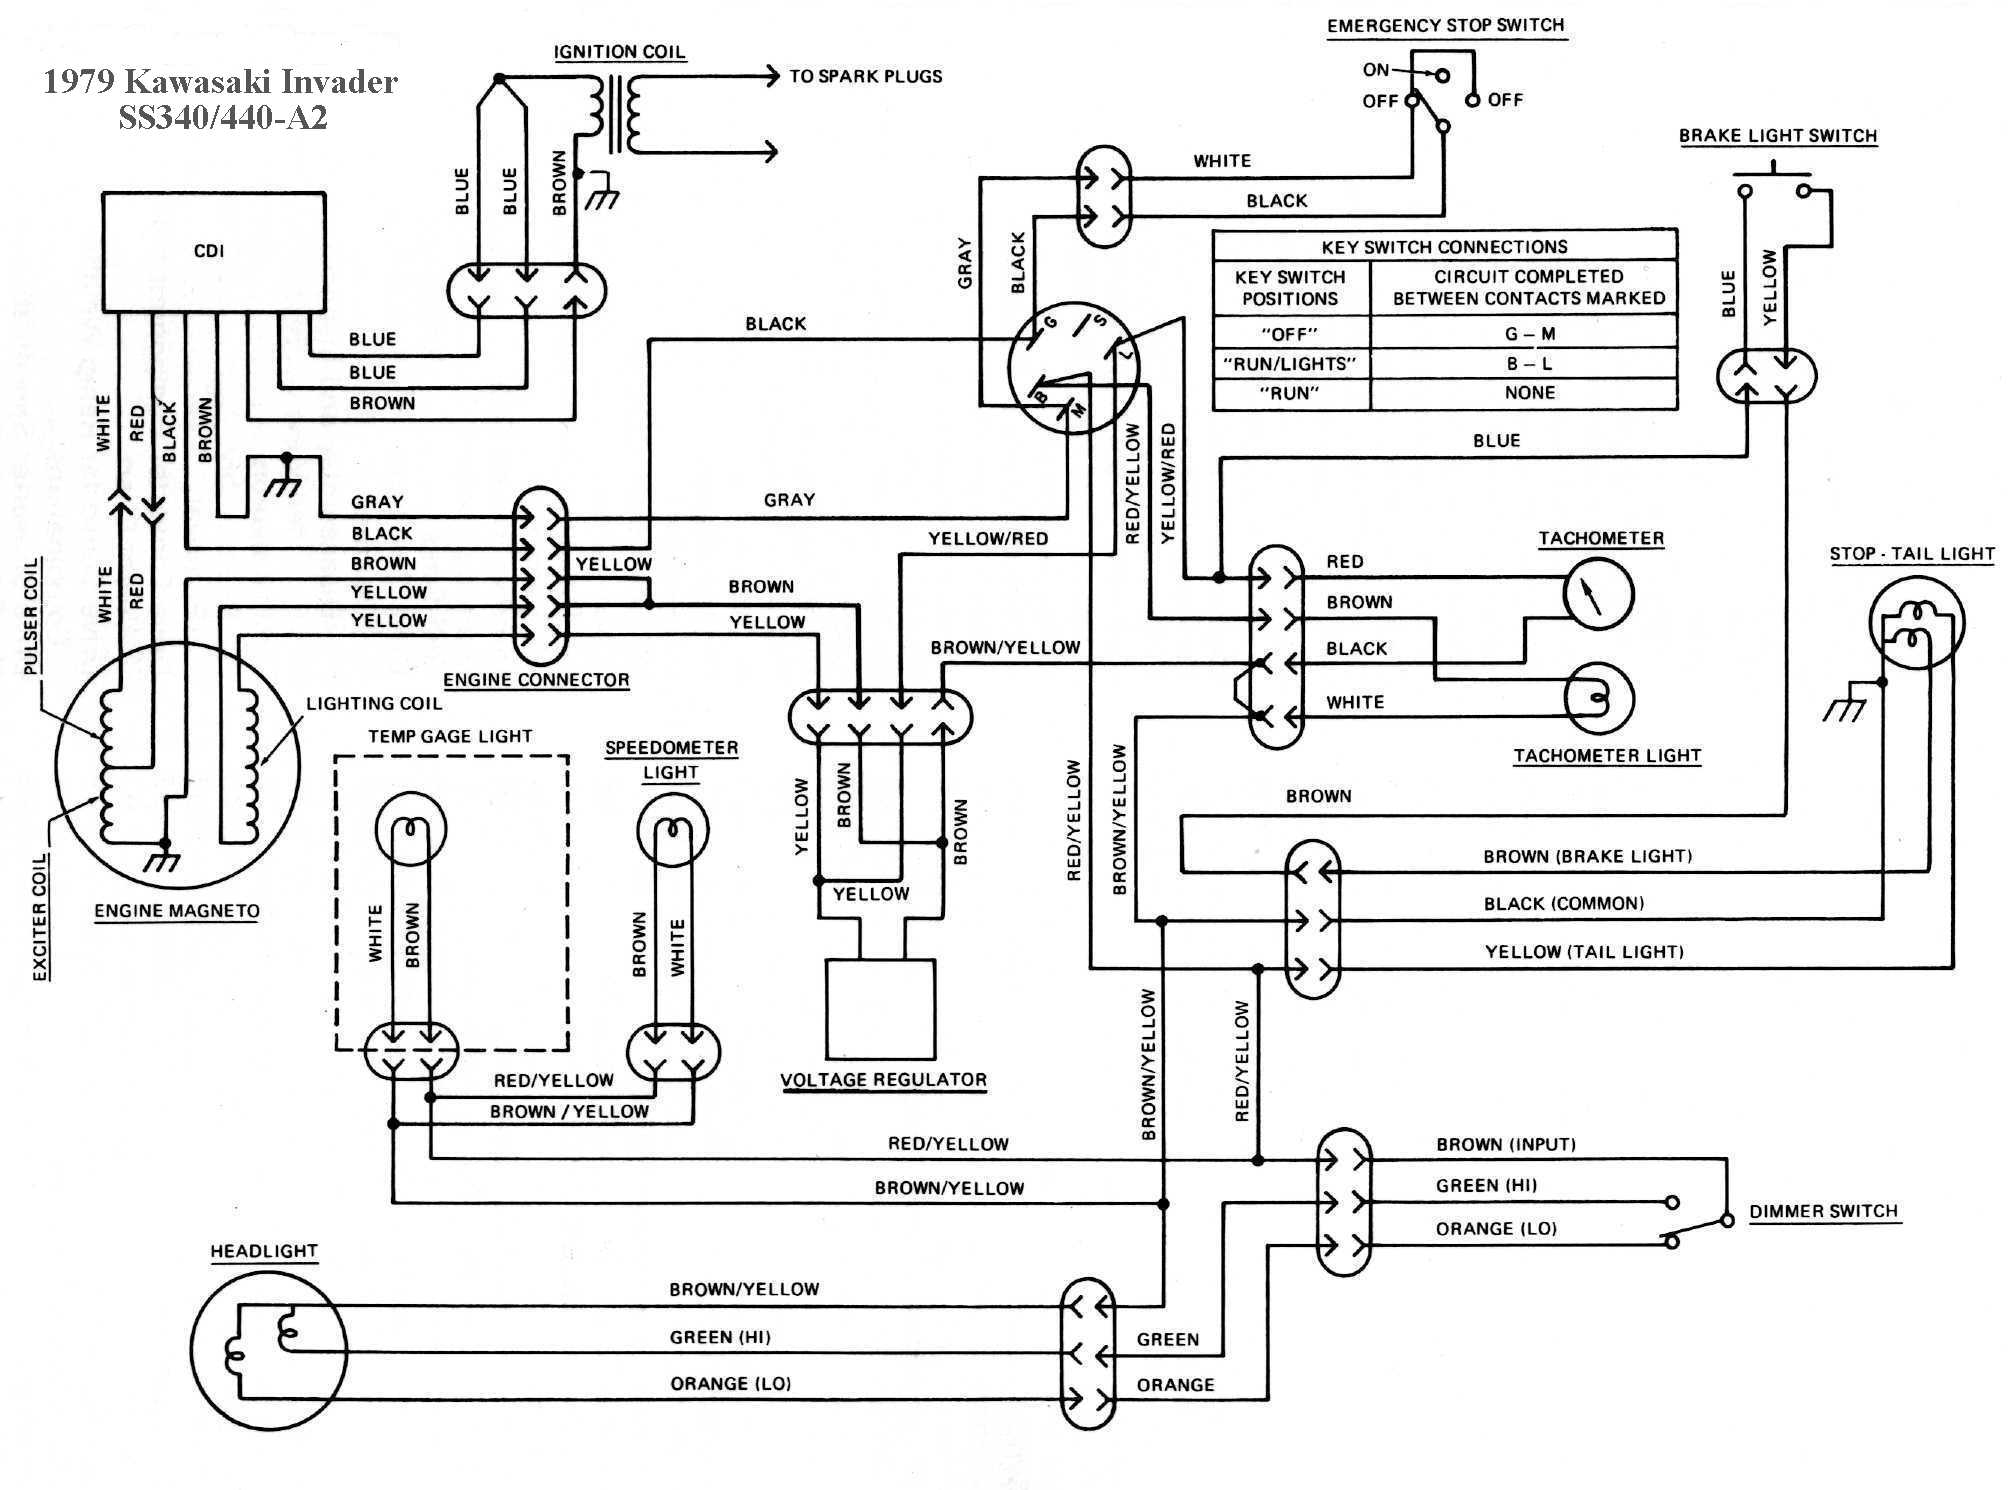 ss340a2 kawasaki invader snowmobile wiring diagrams kawasaki wiring diagram at bayanpartner.co